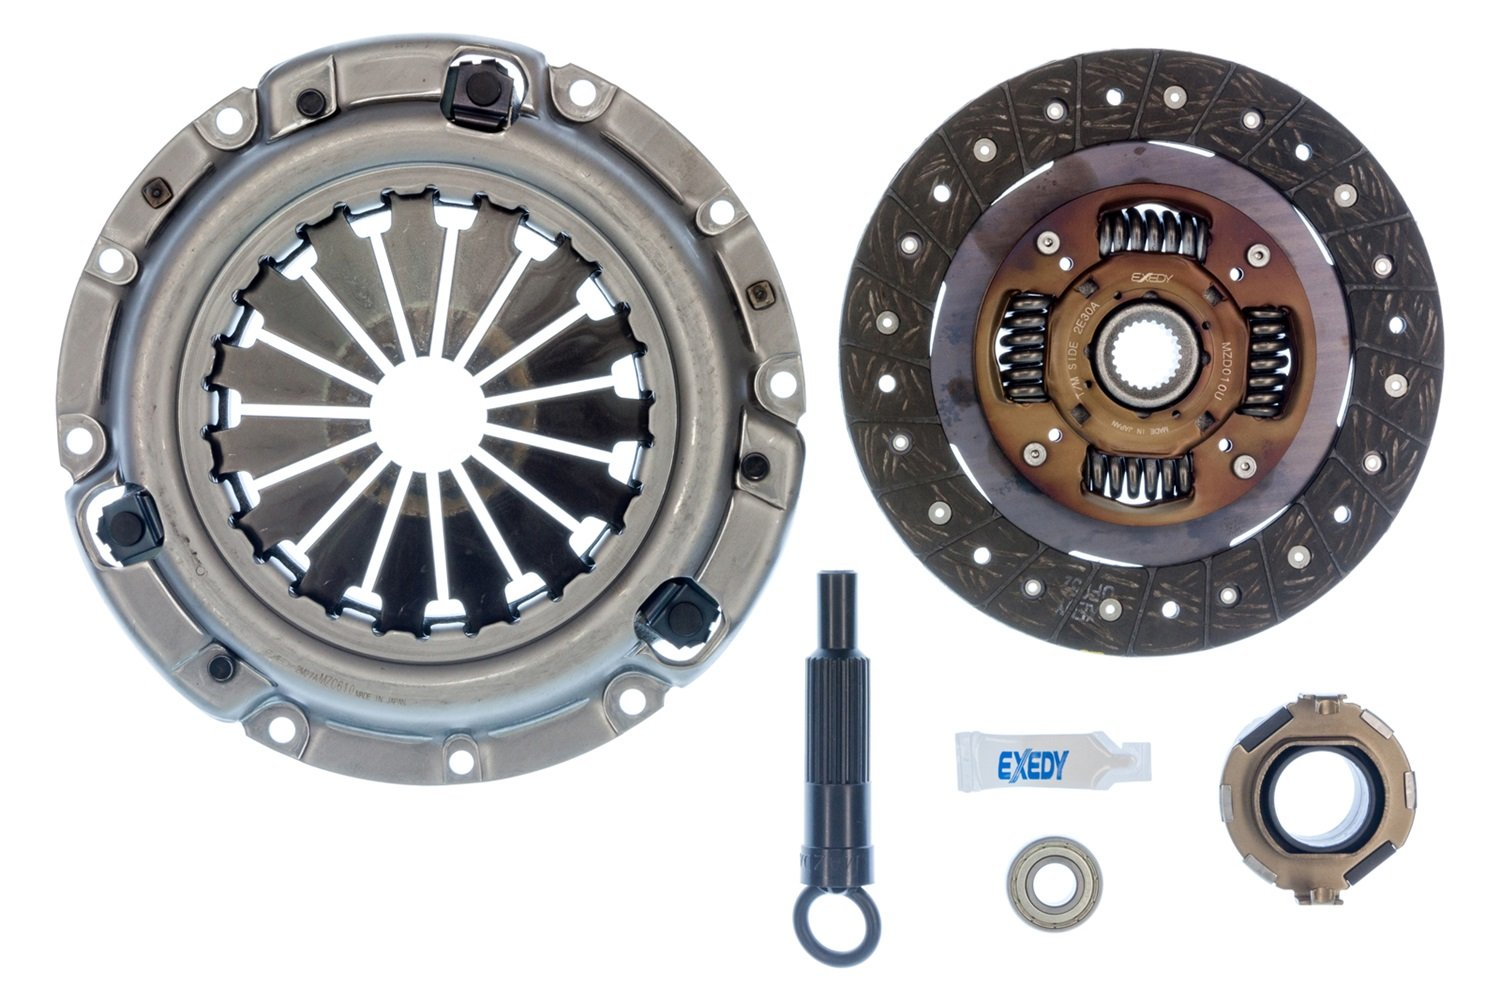 EXEDY KMZ03 OEM Replacement Clutch Kit by Exedy